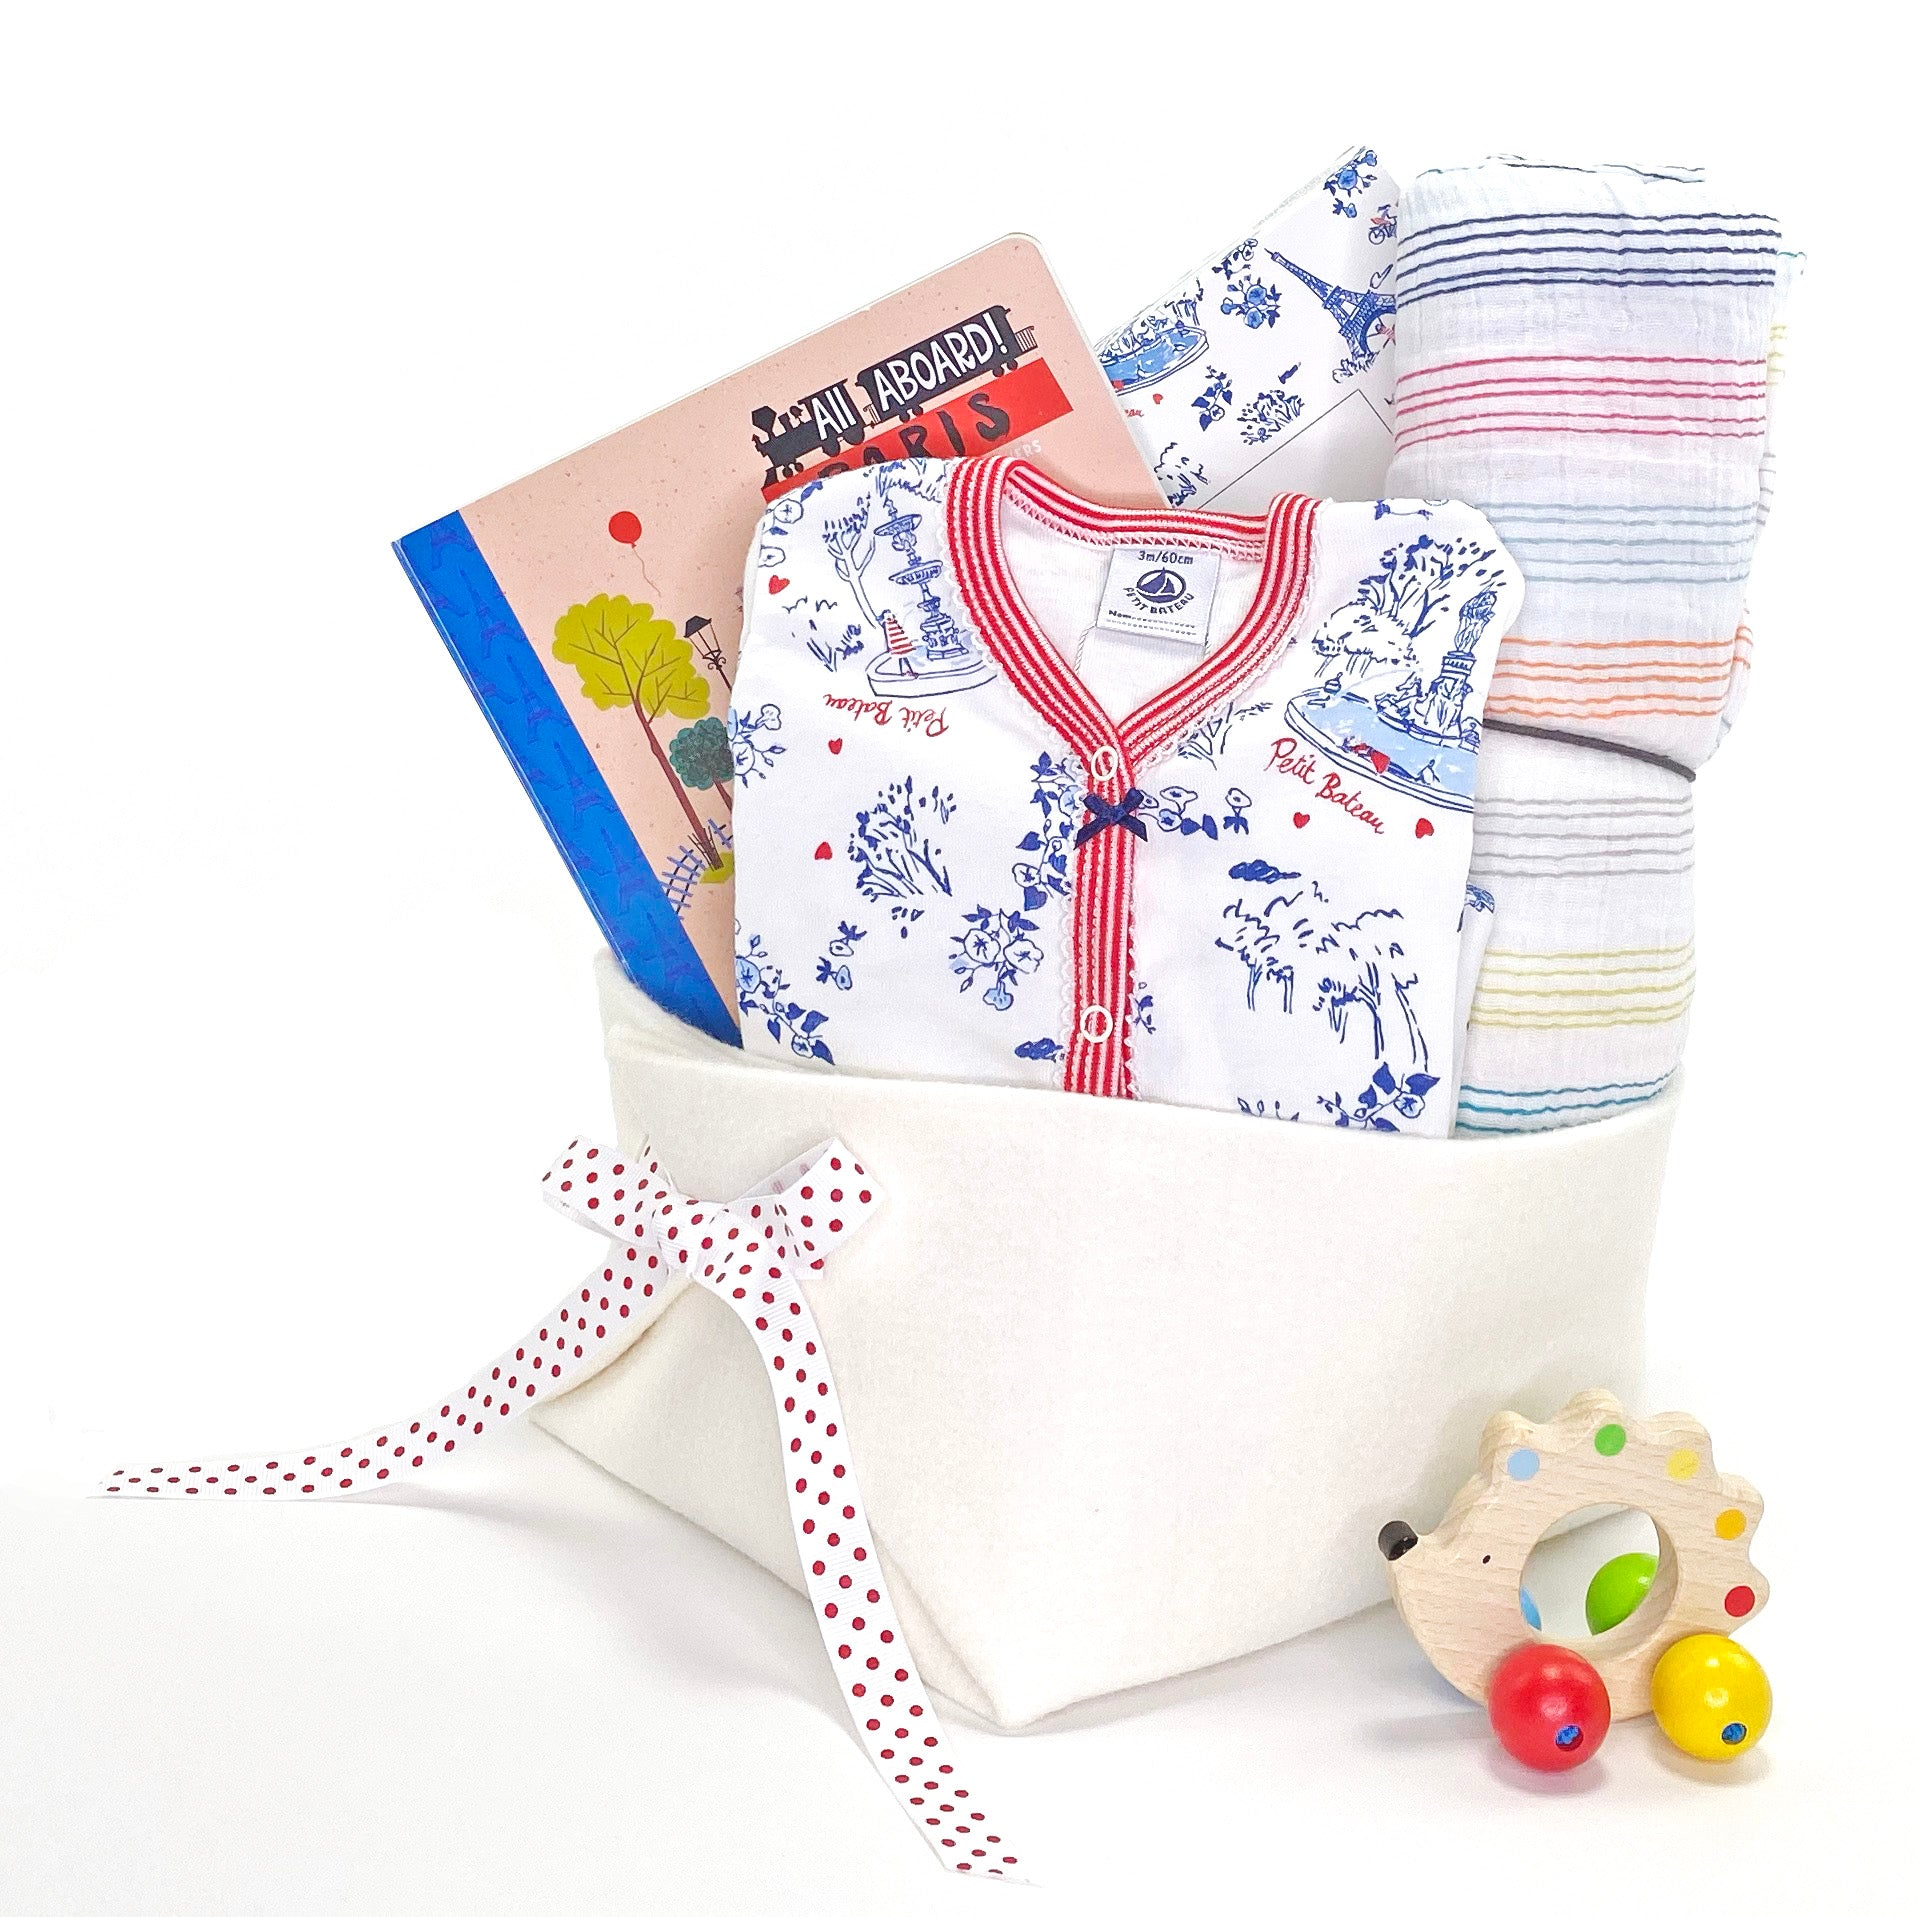 Luxury Baby Gift Basket at Bonjour Baby Baskets featuring Petit Bateau